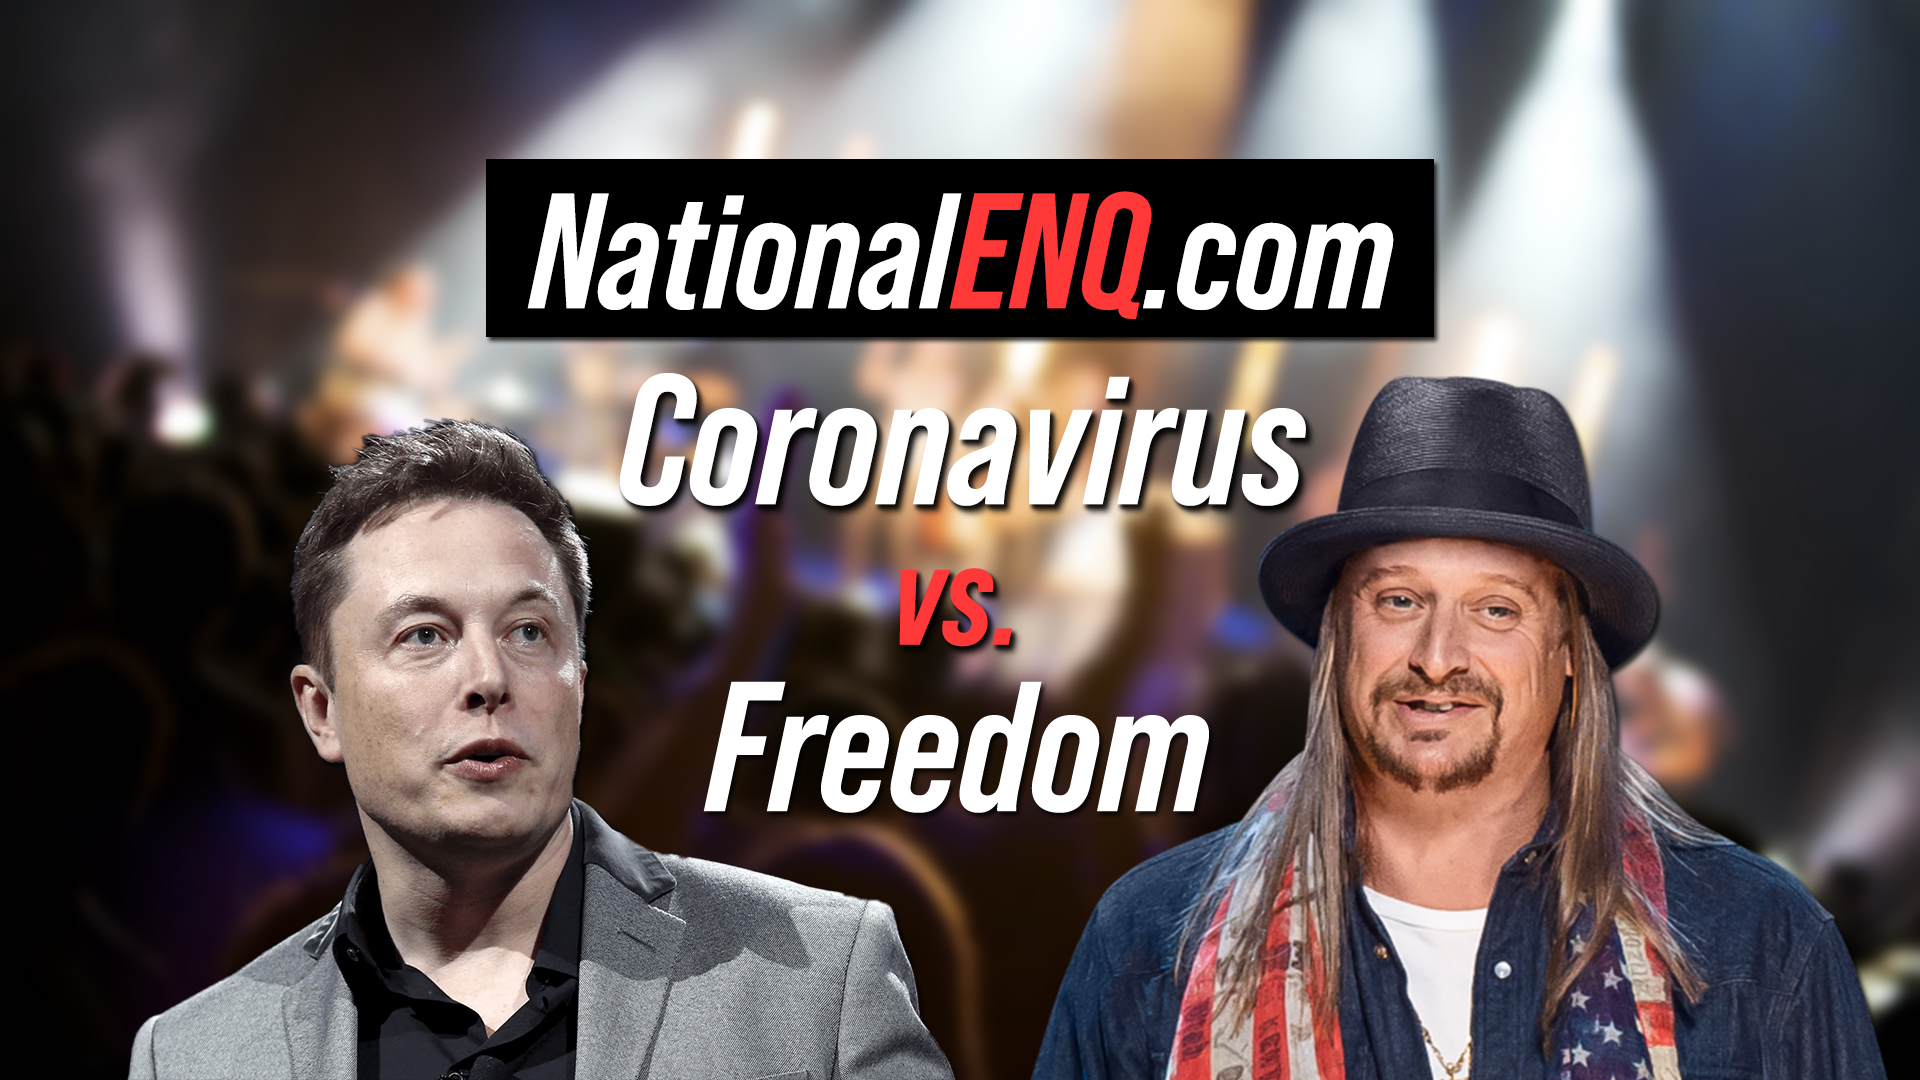 National ENQ Opens National Enquirer: Coronavirus House Arrest or Keep on Living? Kid Rock & Celebrities Want to Keep Bars & Businesses Open